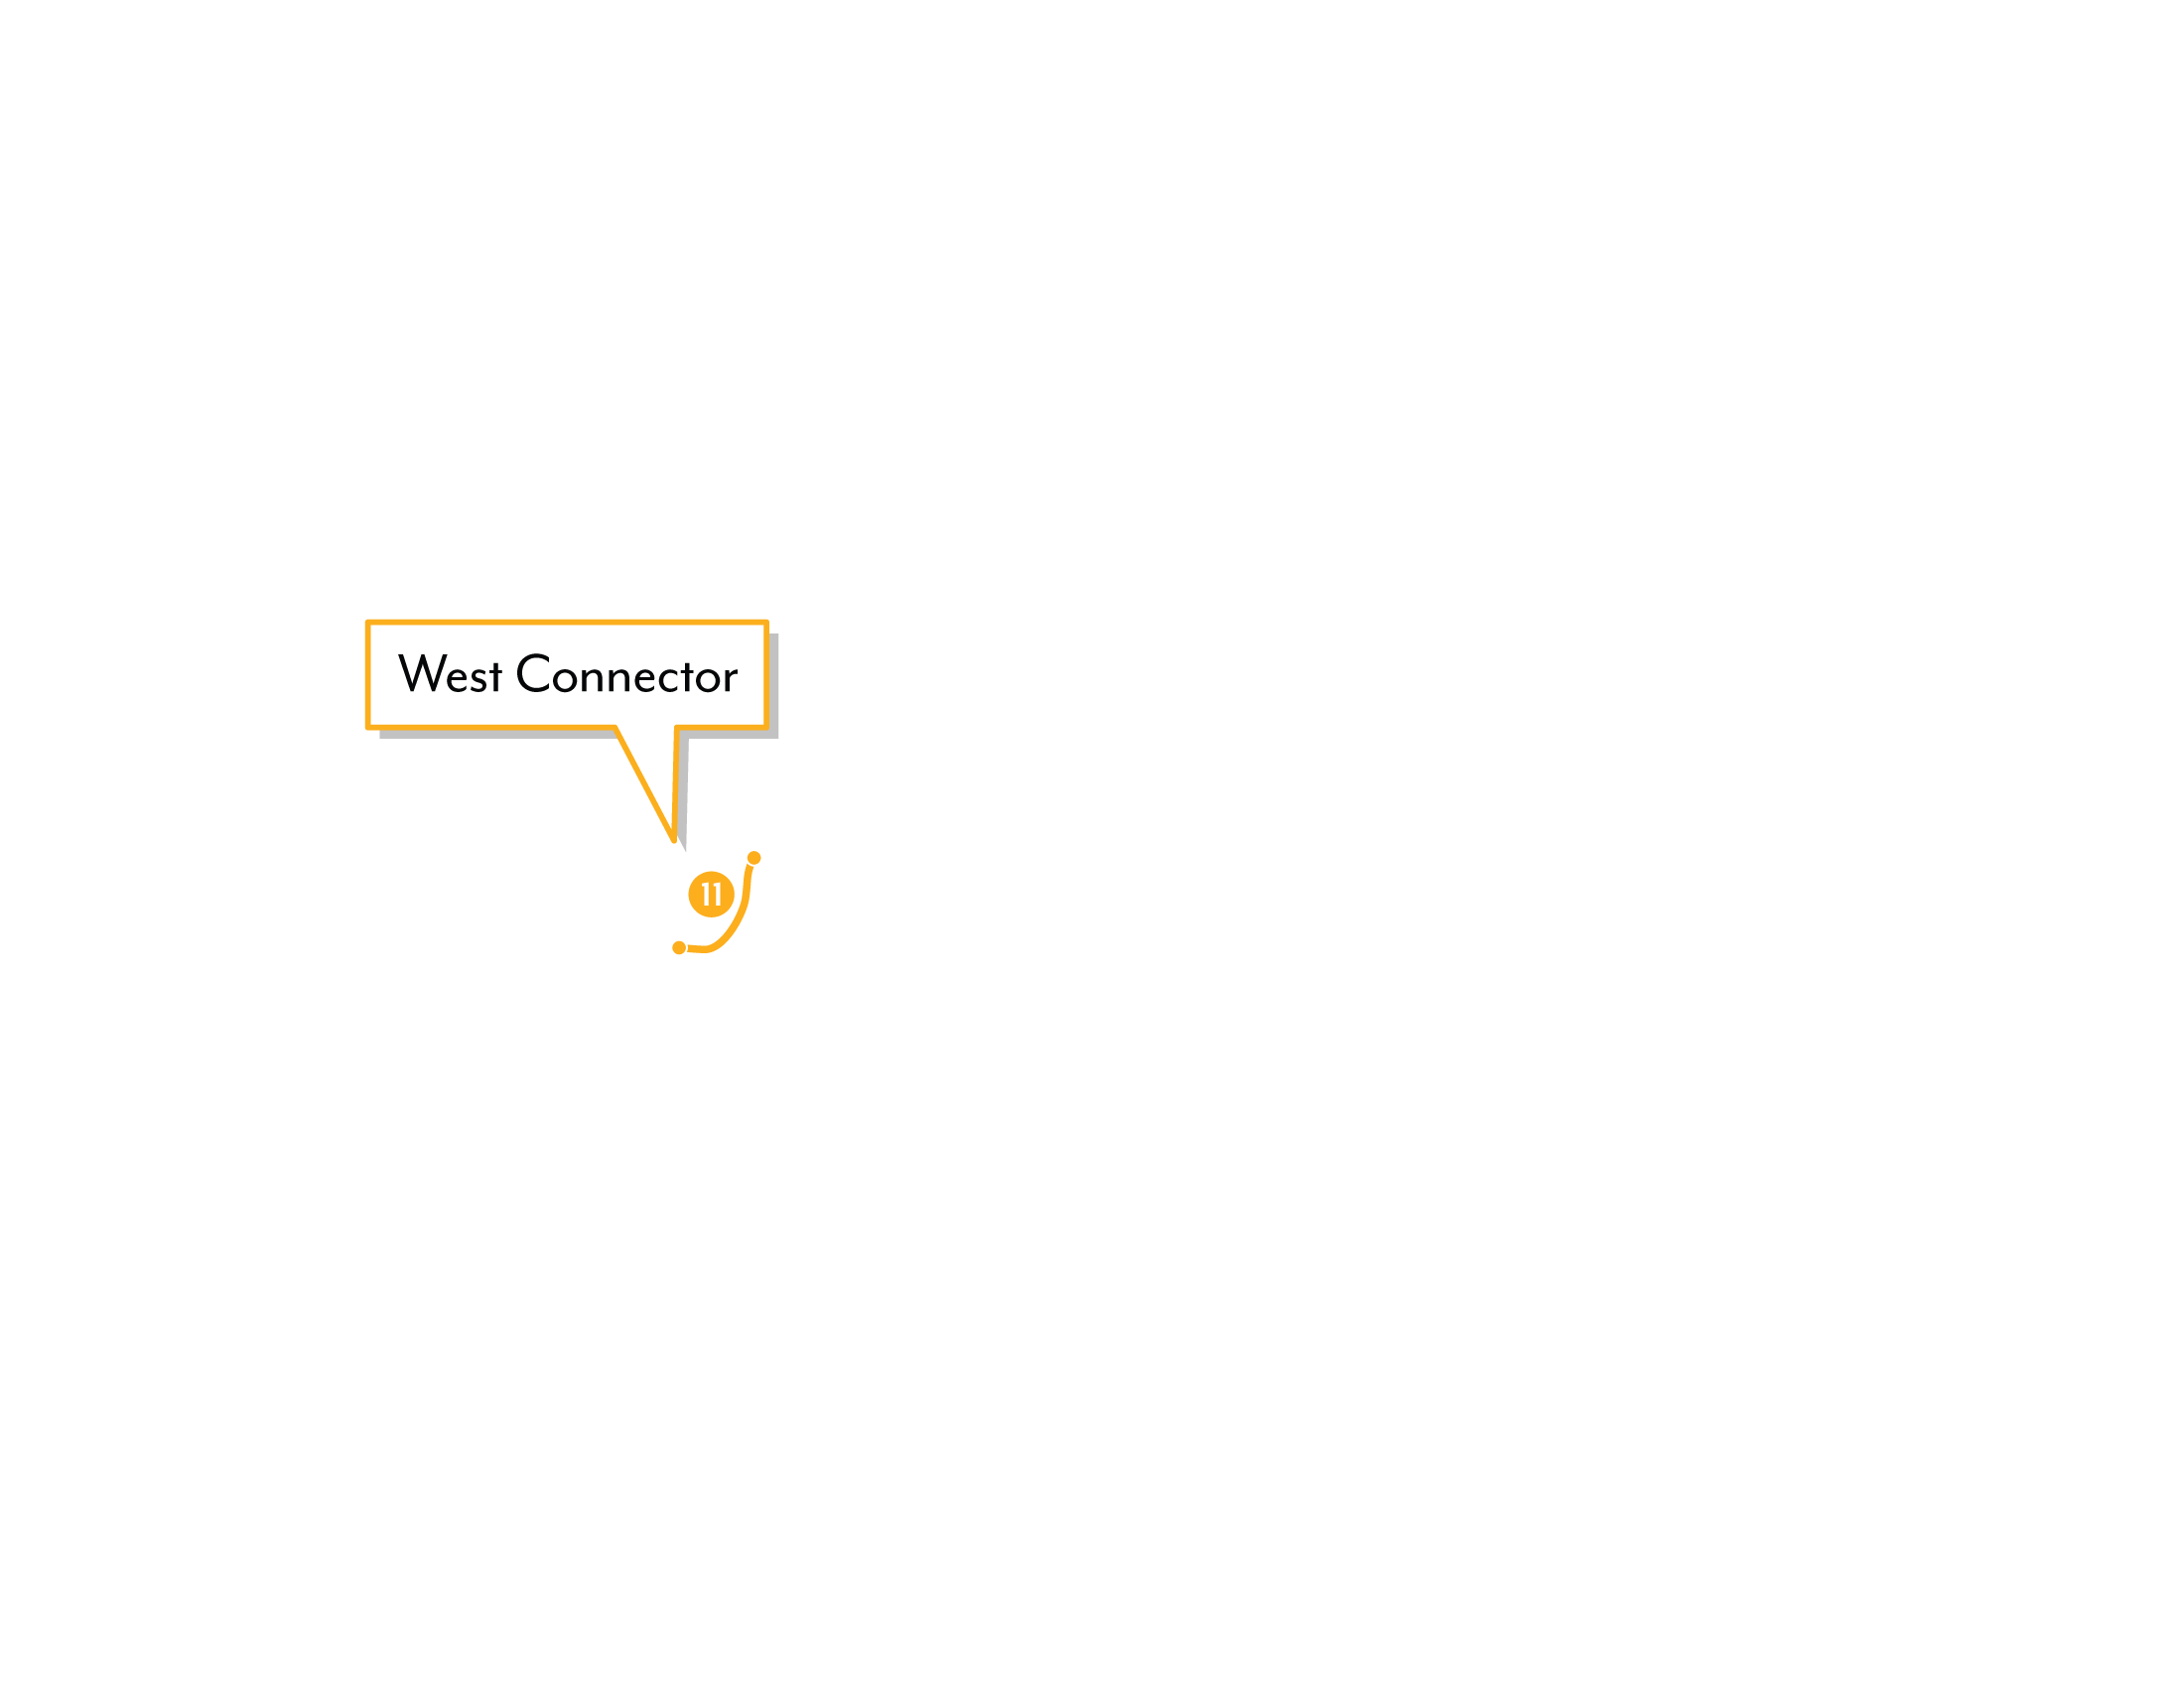 Shearwater graphic depicting the West Connector